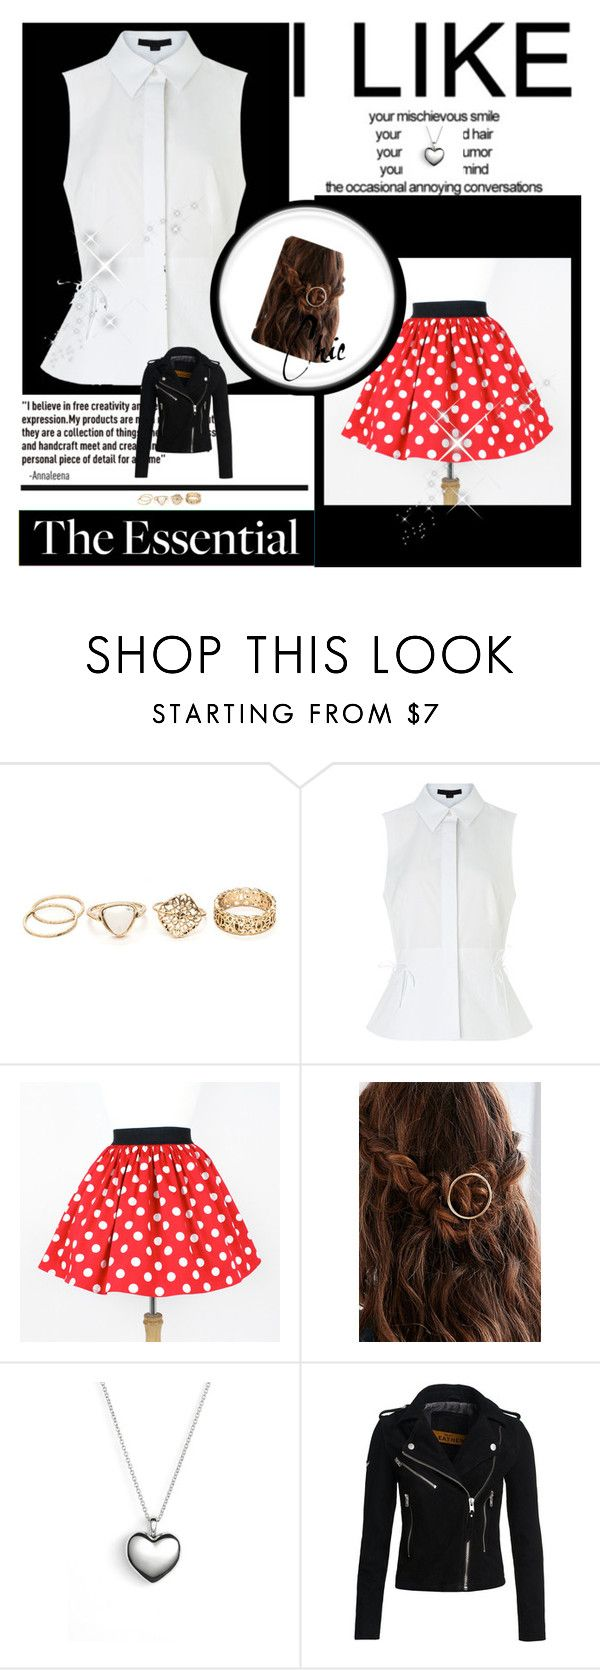 """Untitled #7"" by abby155367 ❤ liked on Polyvore featuring Alexander Wang, Pandora and Superdry"